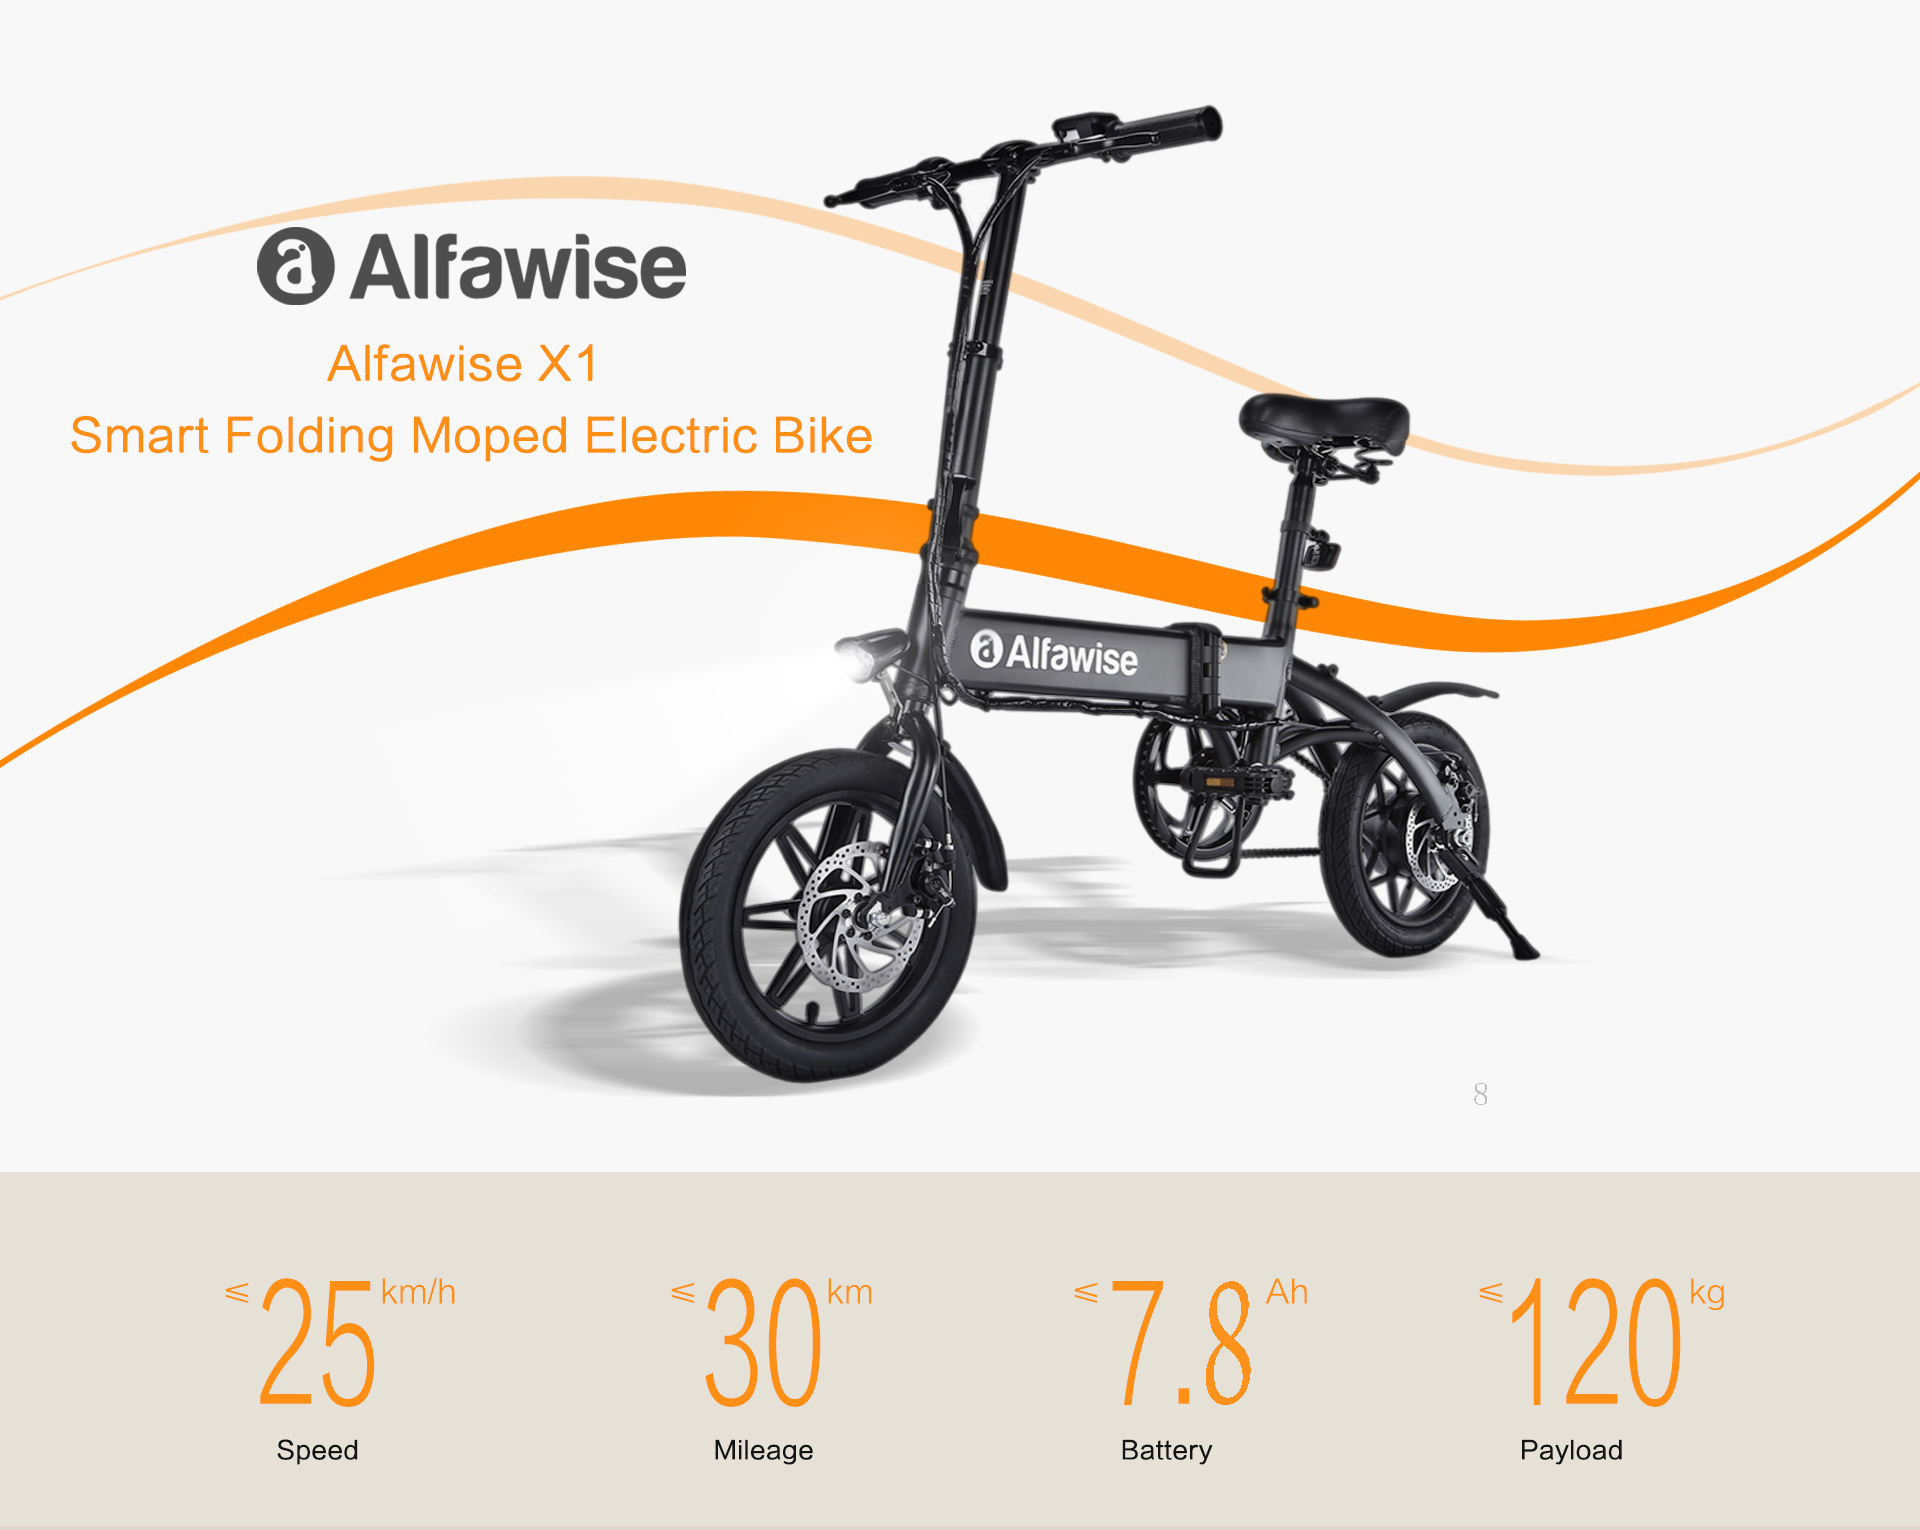 Alfawise X1 E-bike Folding Electric Bike Moped Bicycle- Black 7.8Ah Battery